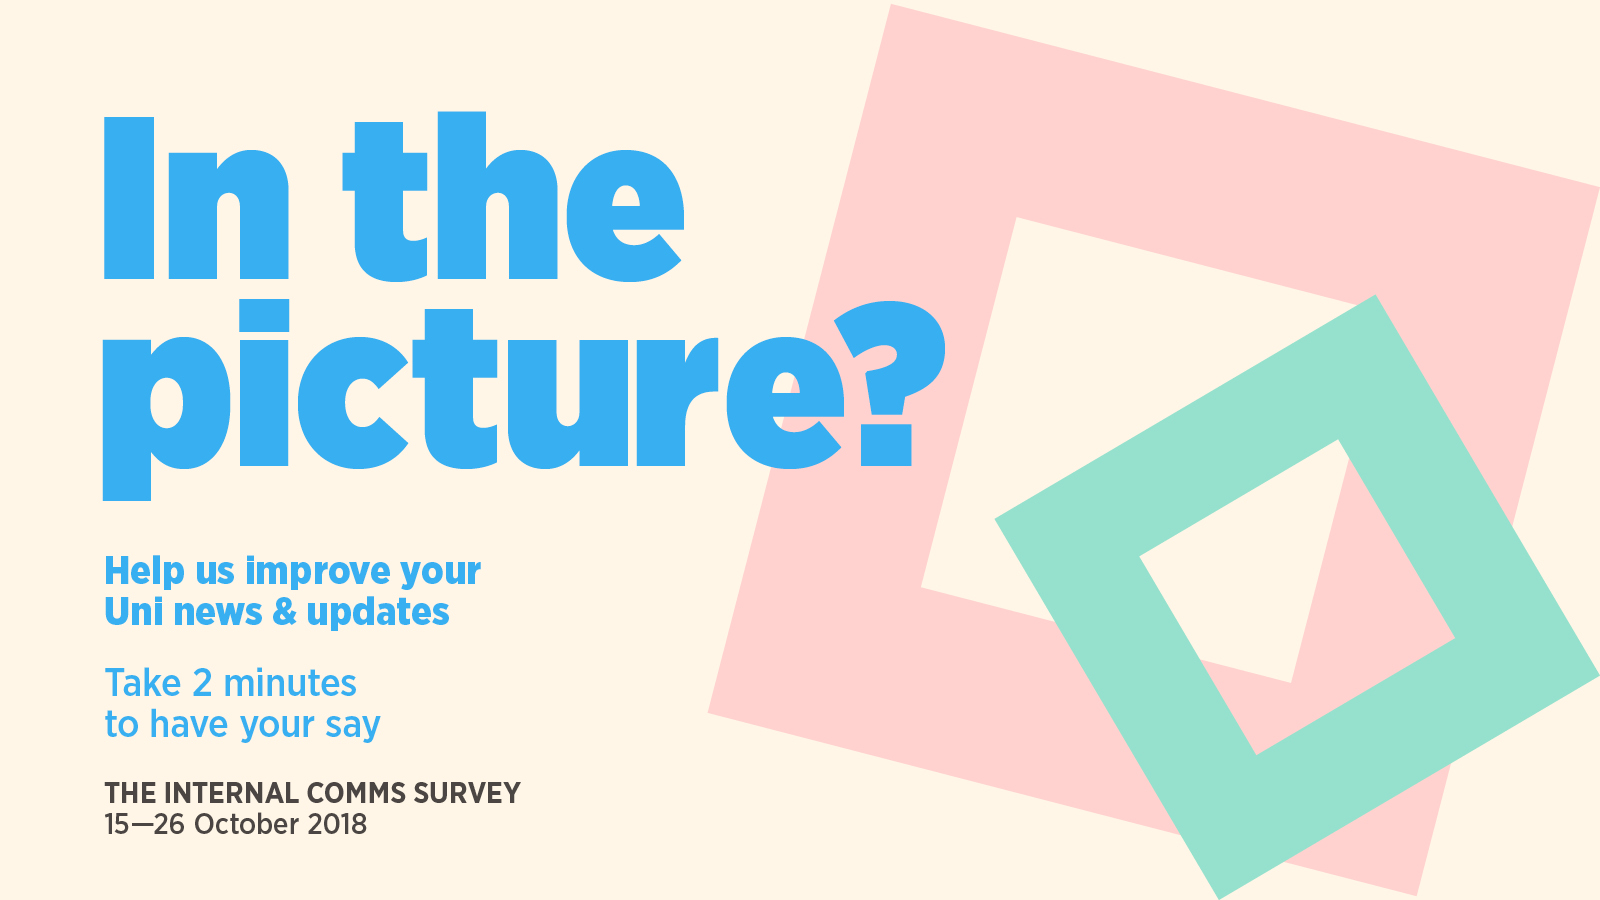 Fill in the internal communications survey